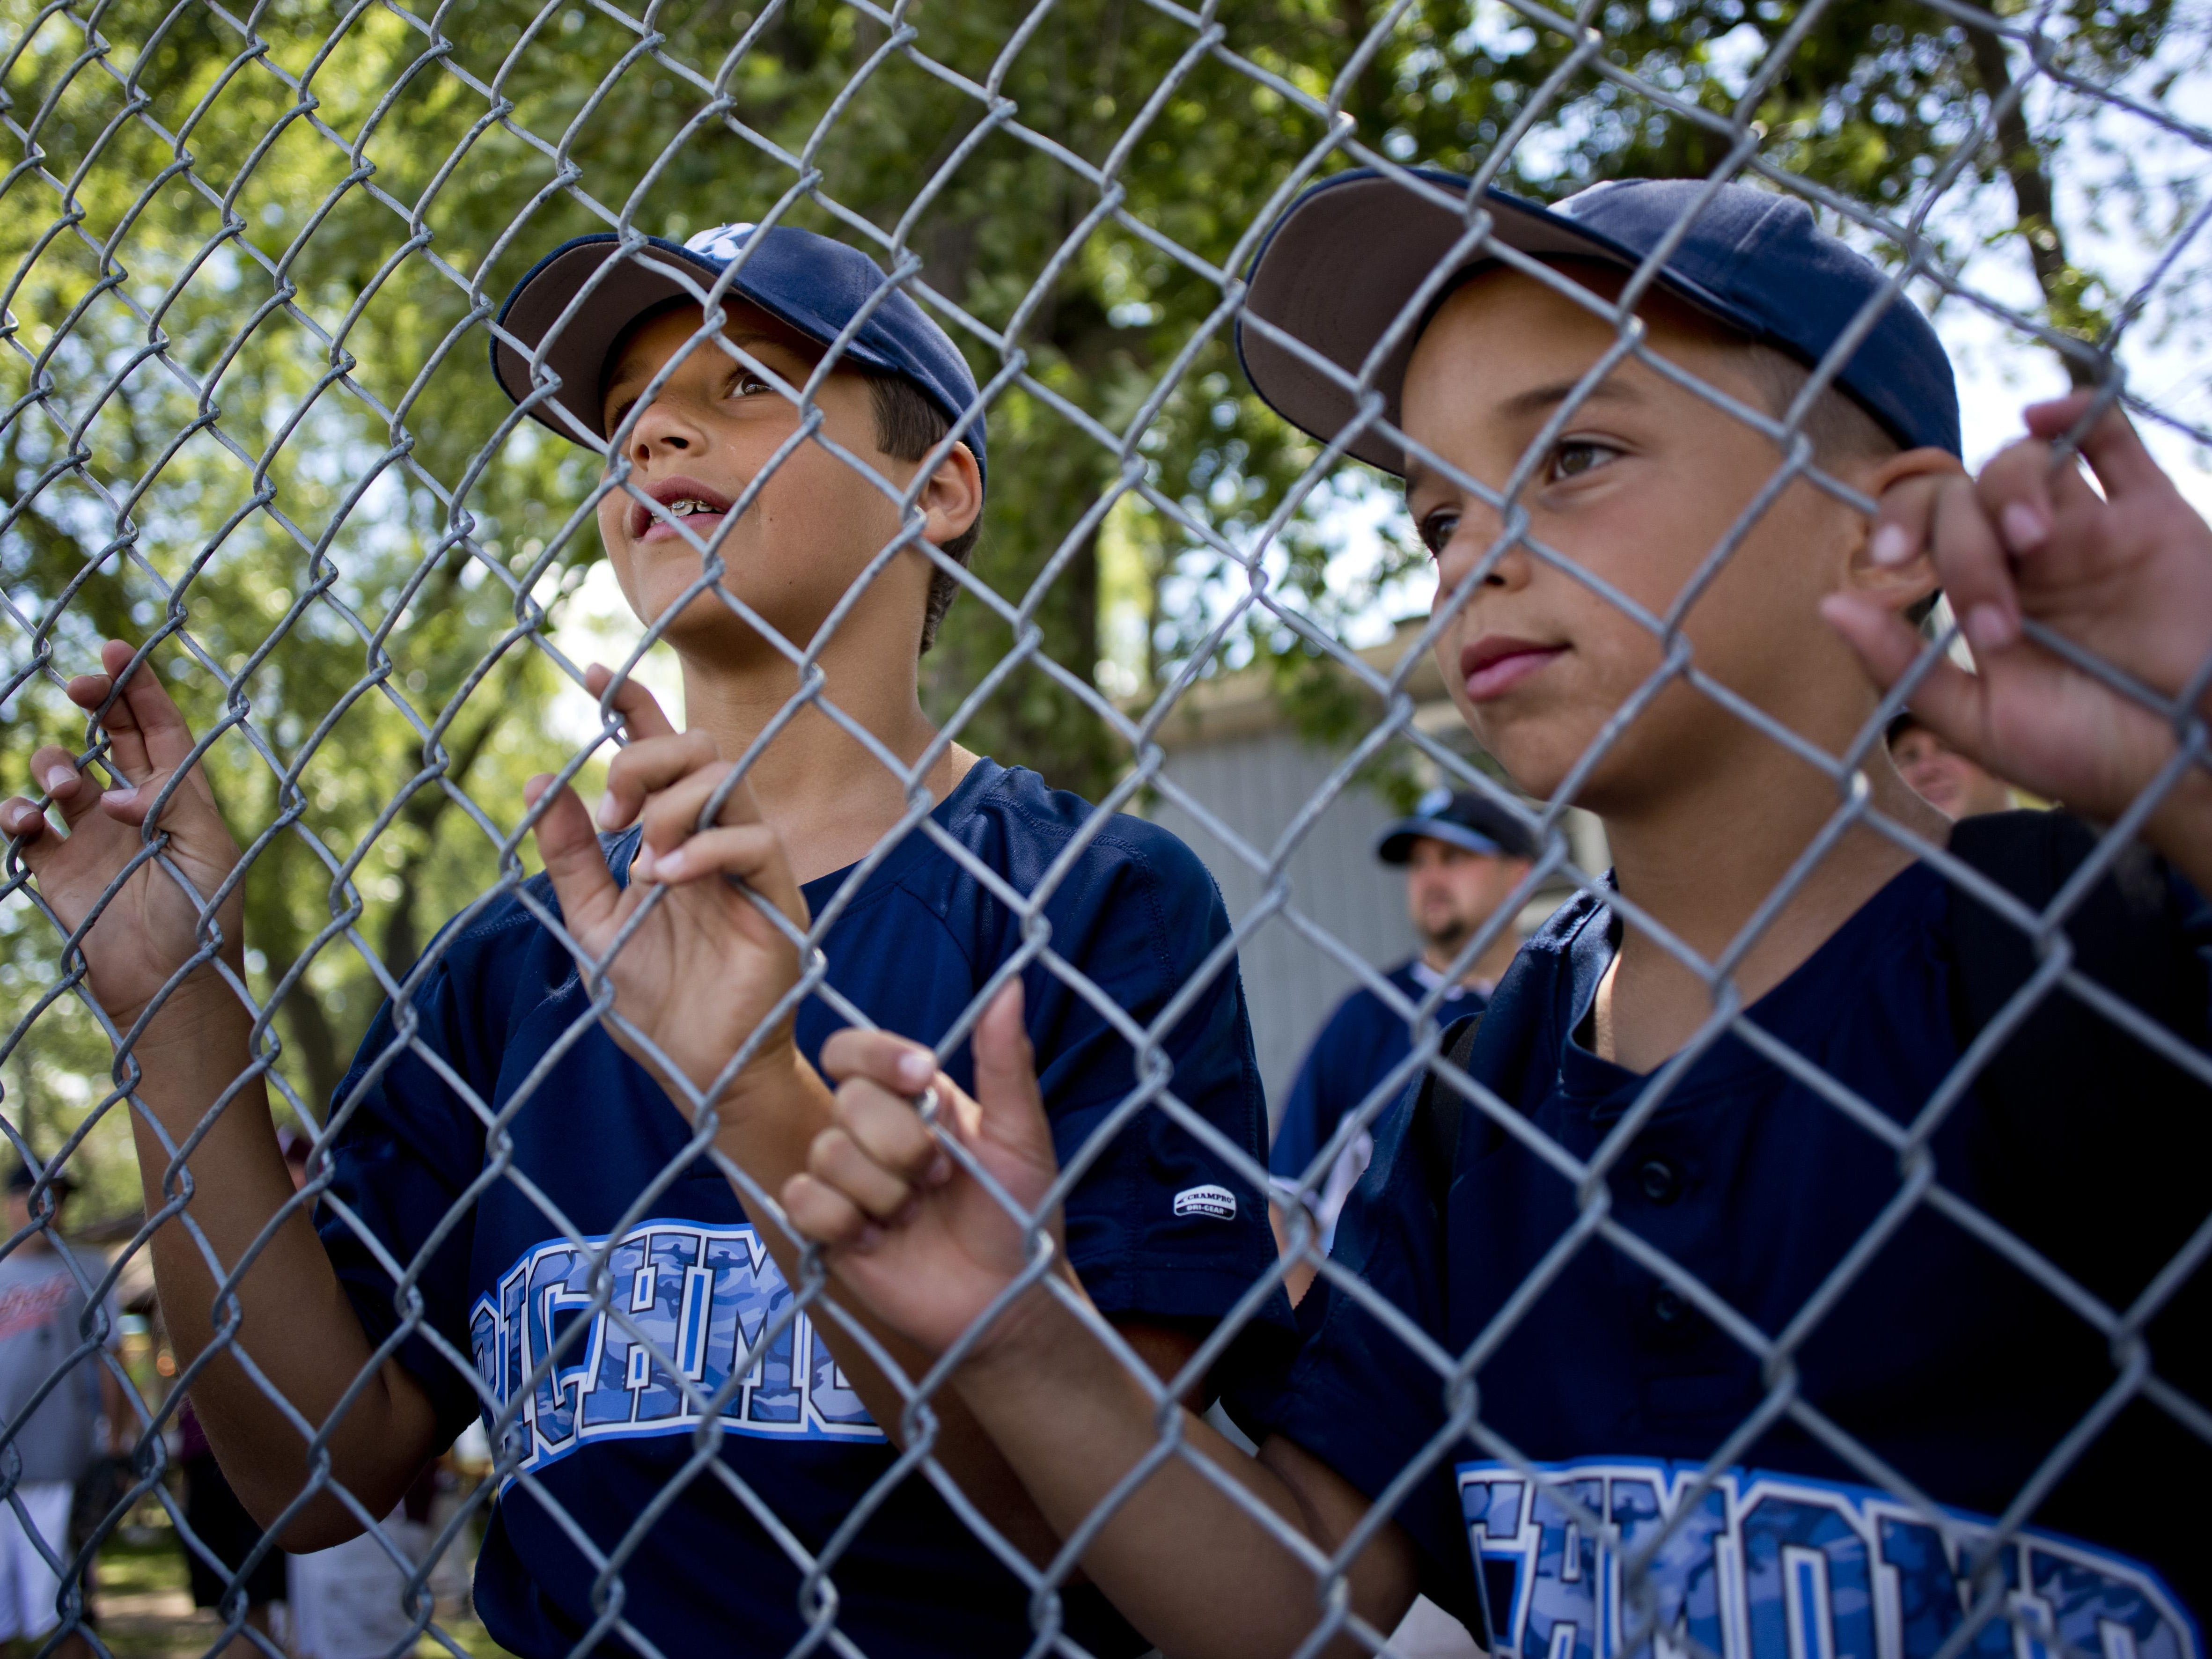 Richmond players Joey Simmons and Maximus Greenia, both 9, watch from behind the fence during a Little League skills competition Saturday, August 1, 2015 at Marysville City Park.